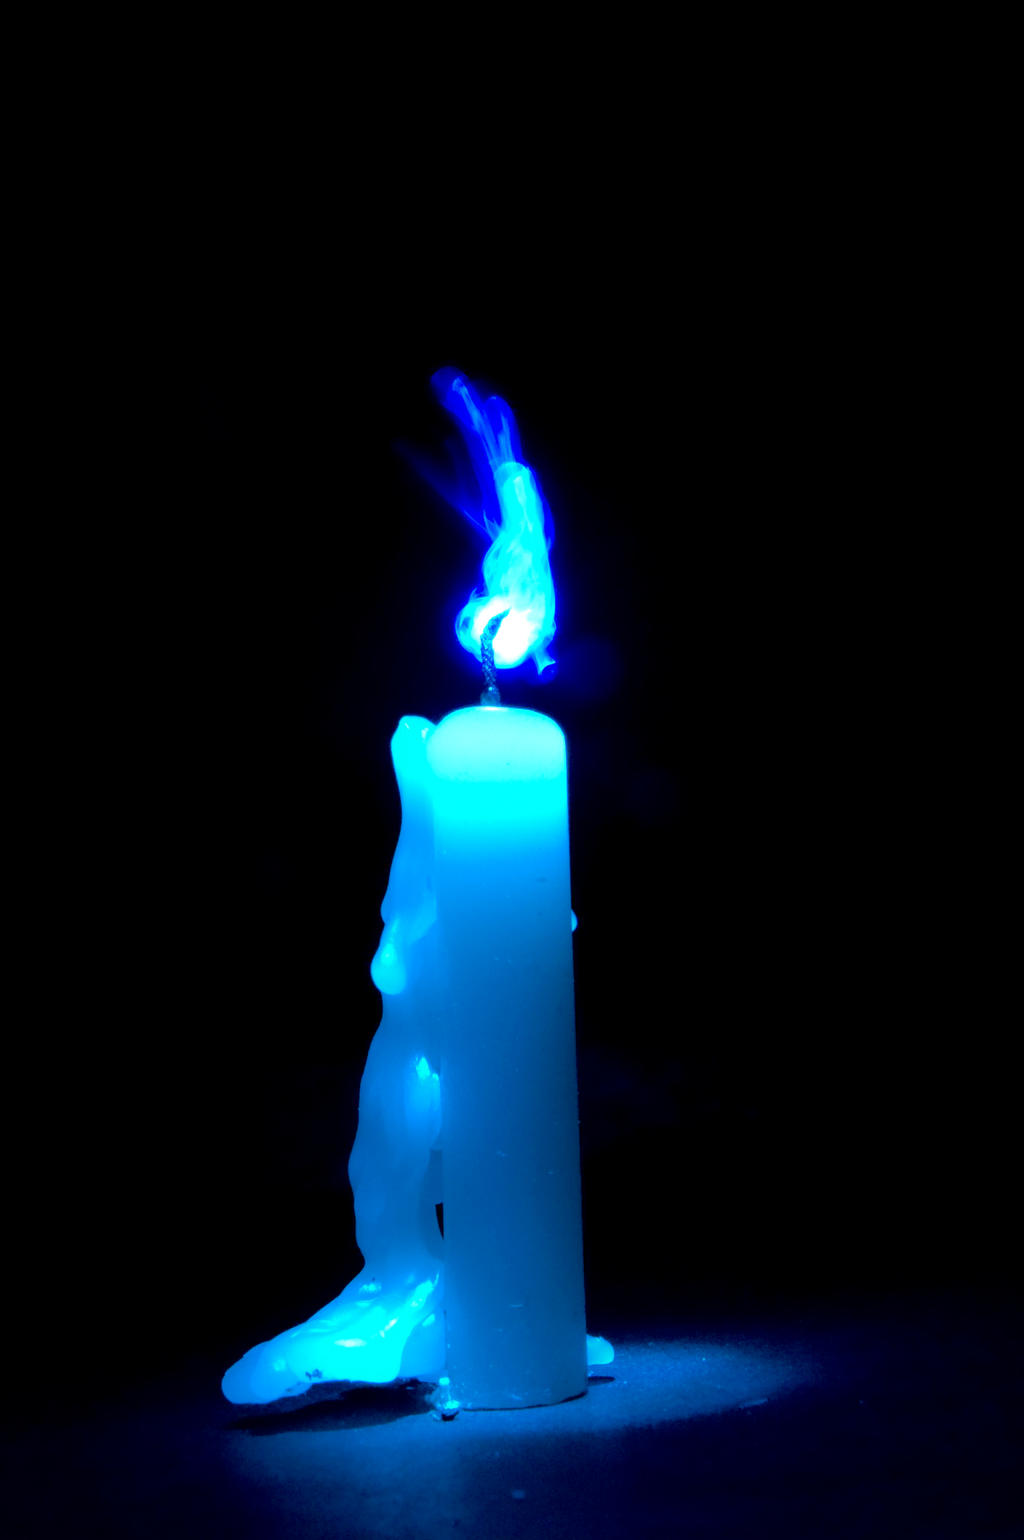 Immaterial Candle By Killythirsk On DeviantArt